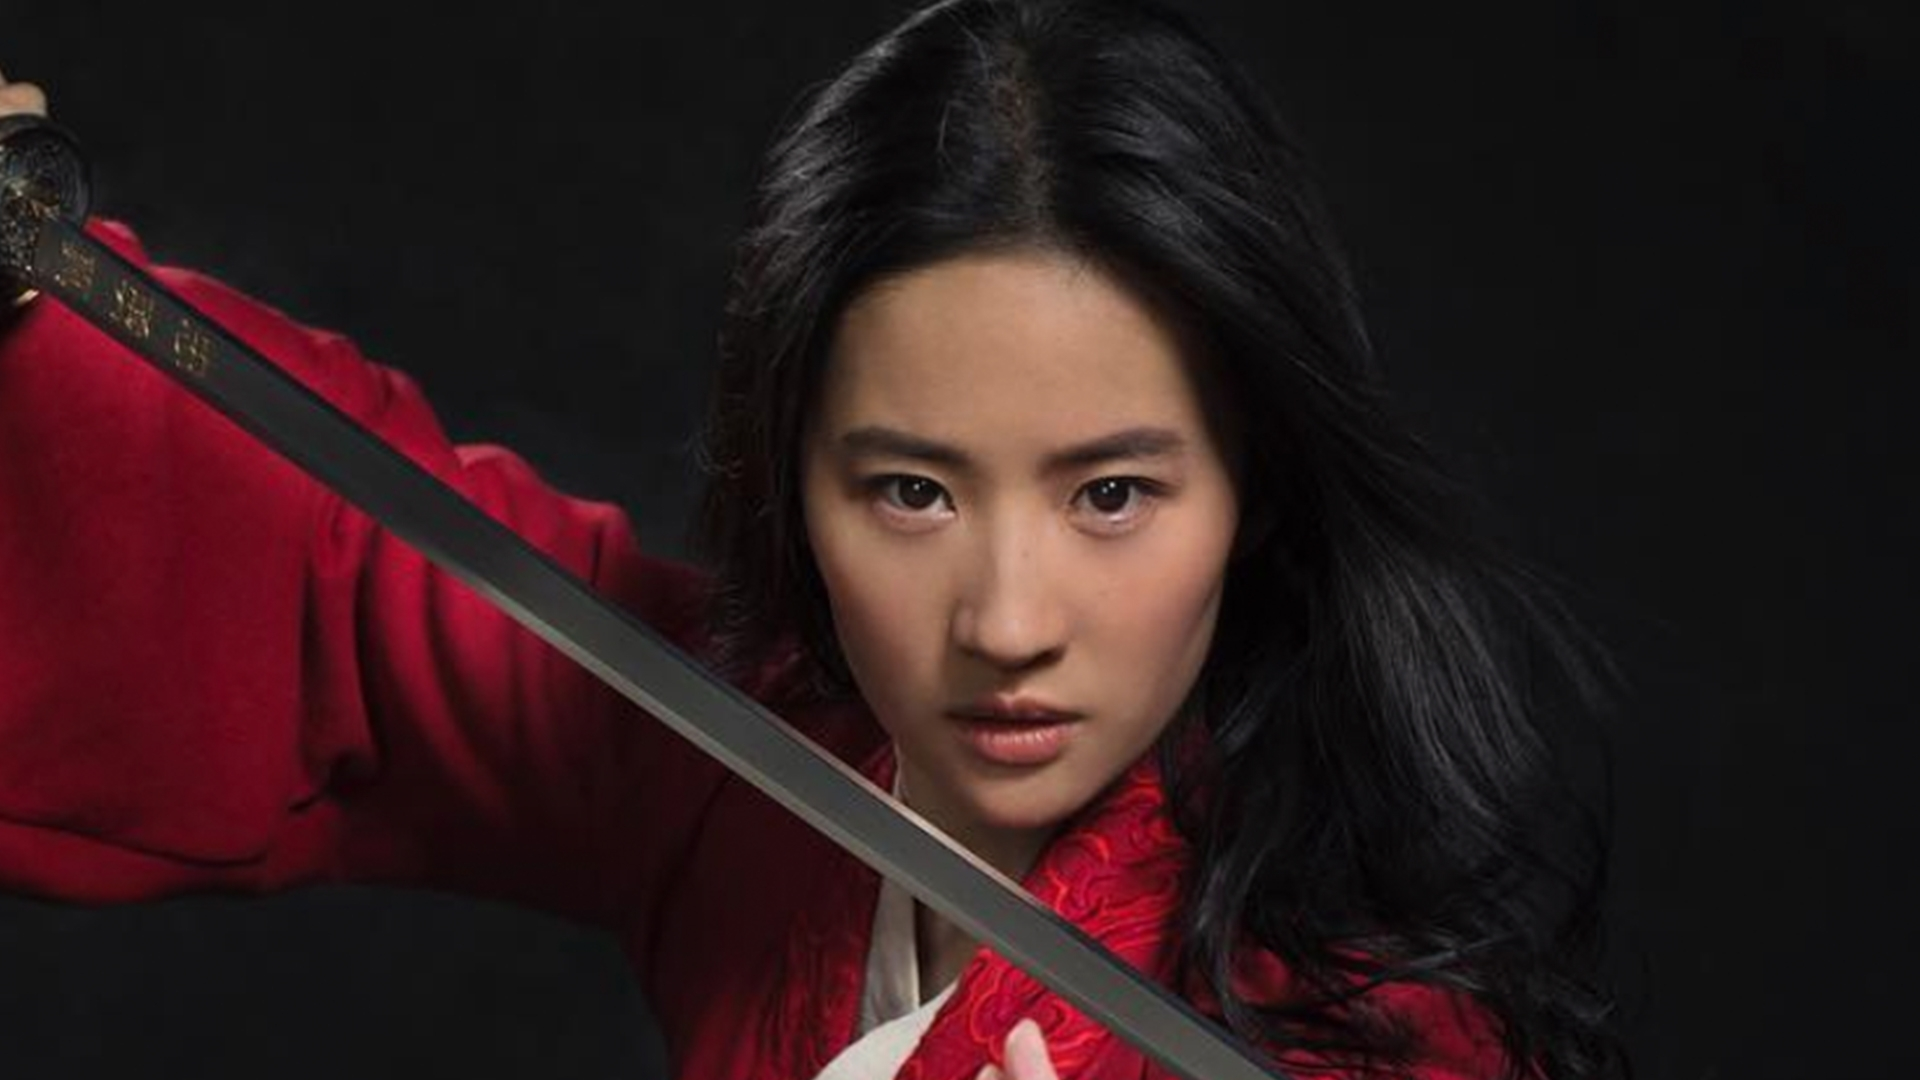 Mulan (2020) Review - The Action Elite